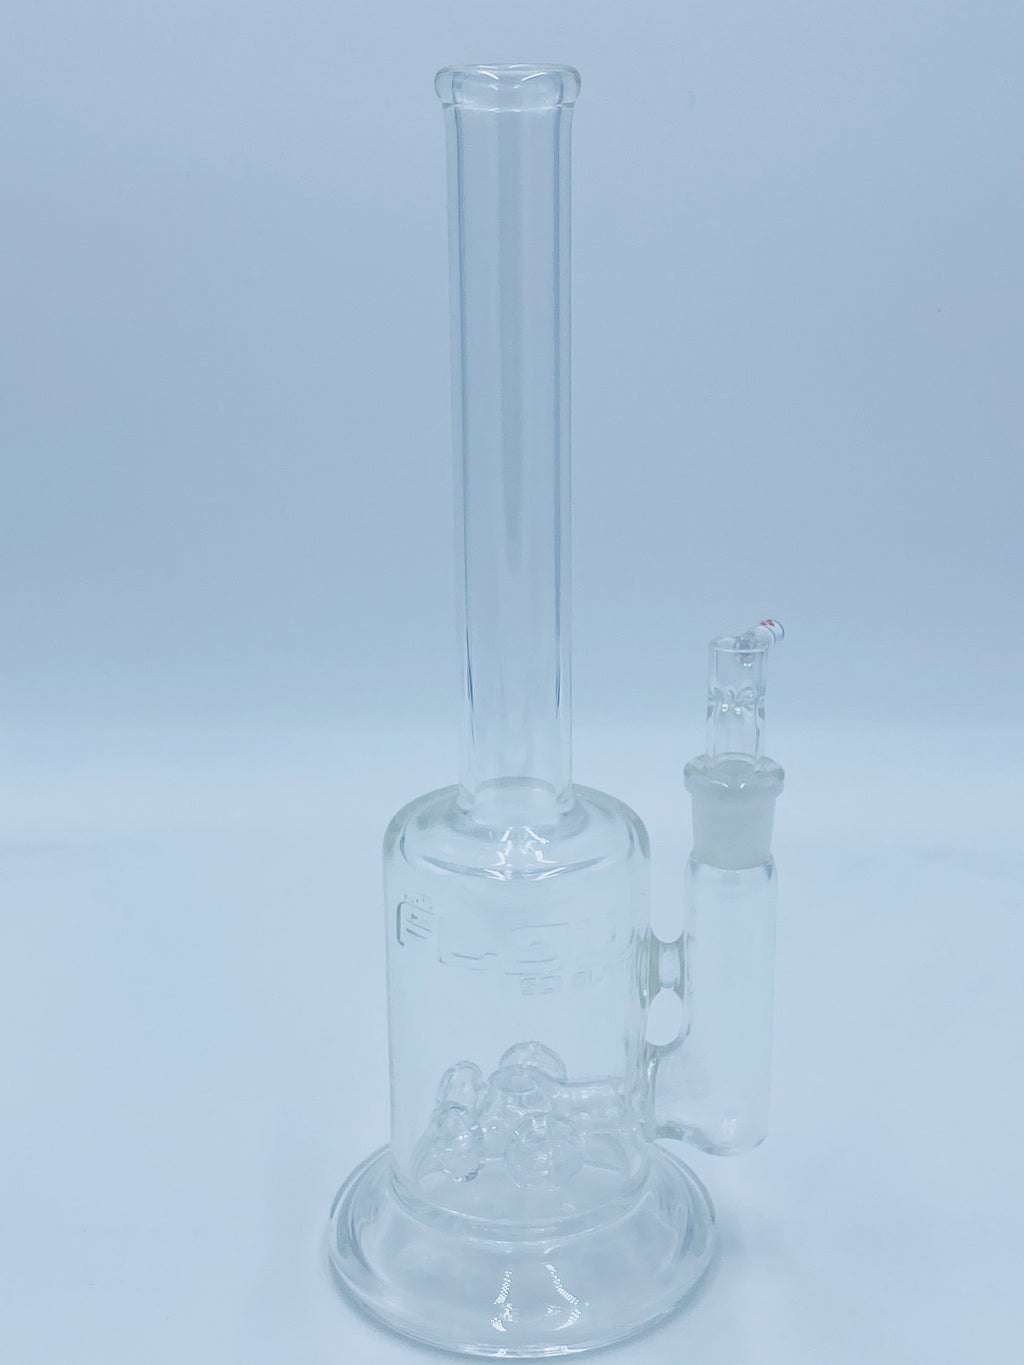 JM FLOW CLUSTER PERCOLATOR - Smoke Country - Land of the artistic glass blown bongs